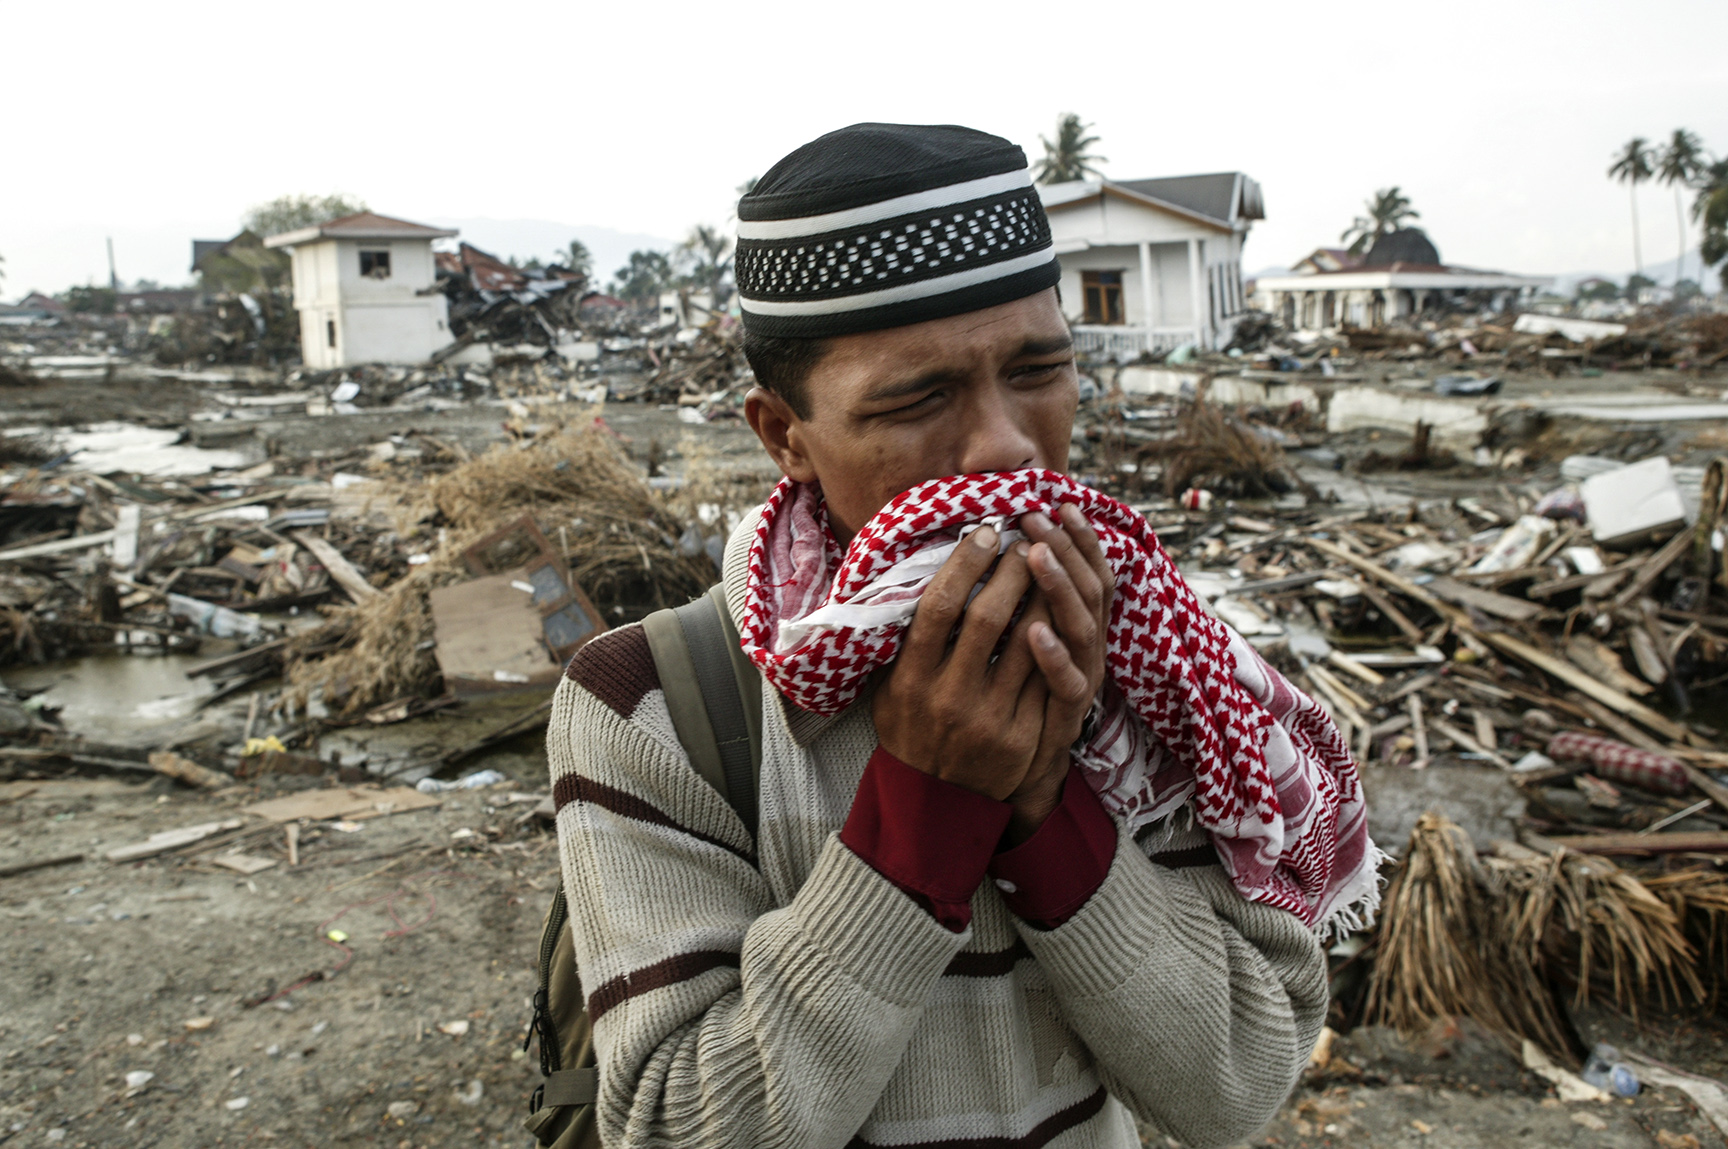 160,000 lost their lives in Banda Aceh and more than 60% of the city's buildings were destroyed.